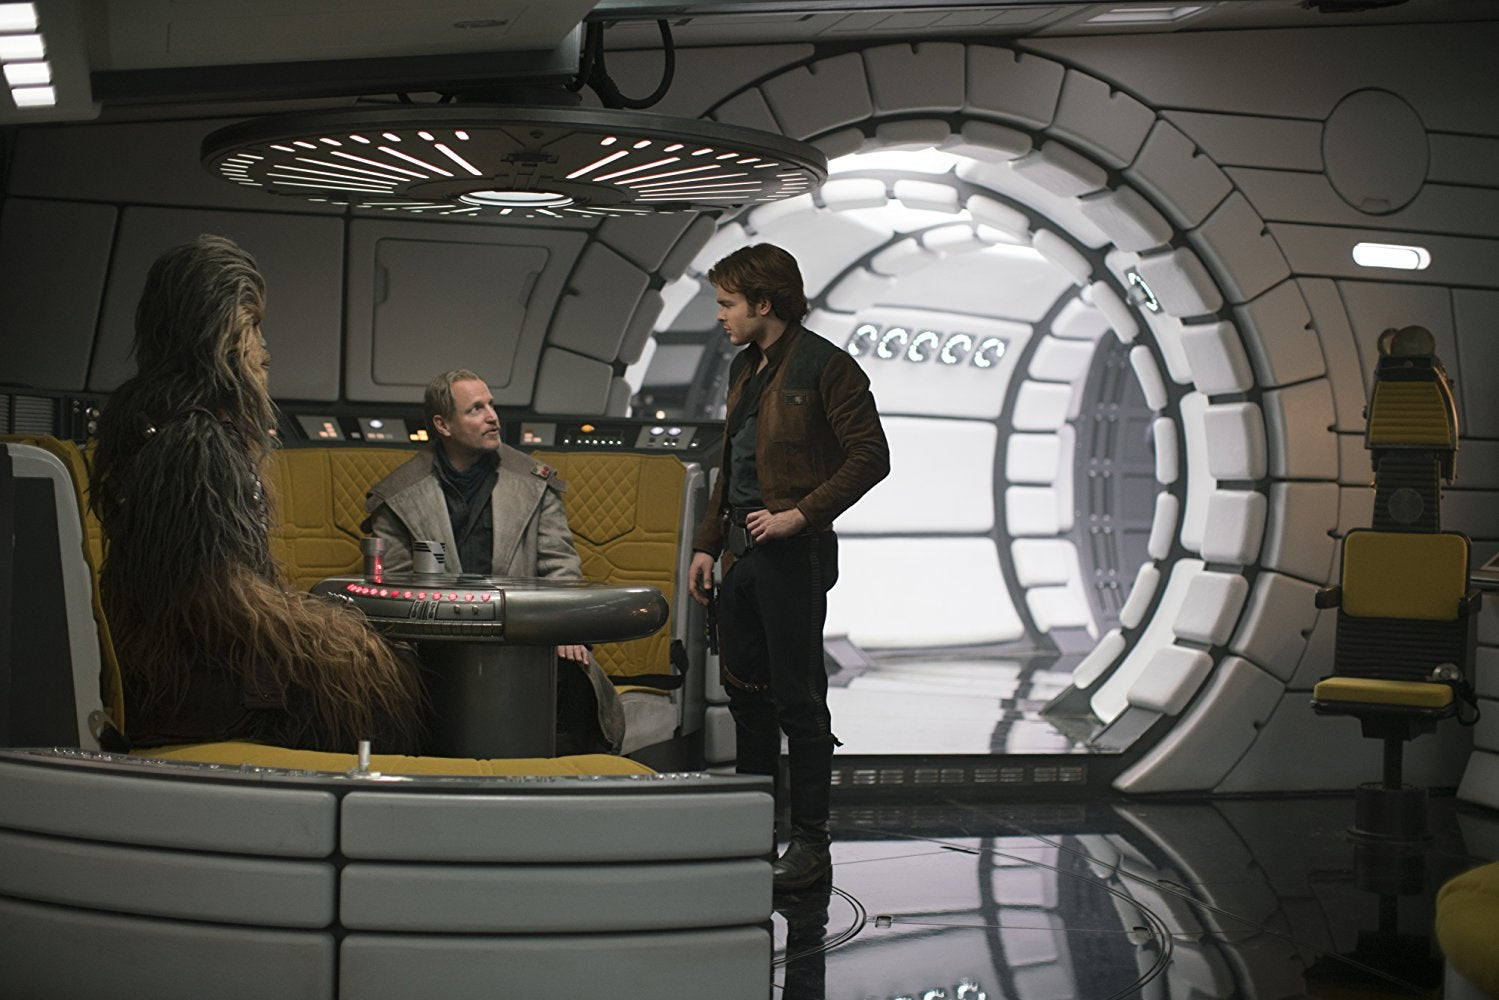 Chewbacca, Woody Harrelson as Tobias Beckett, and Alden Ehrenreich as Han Solo, aboard the Millennium Falcon